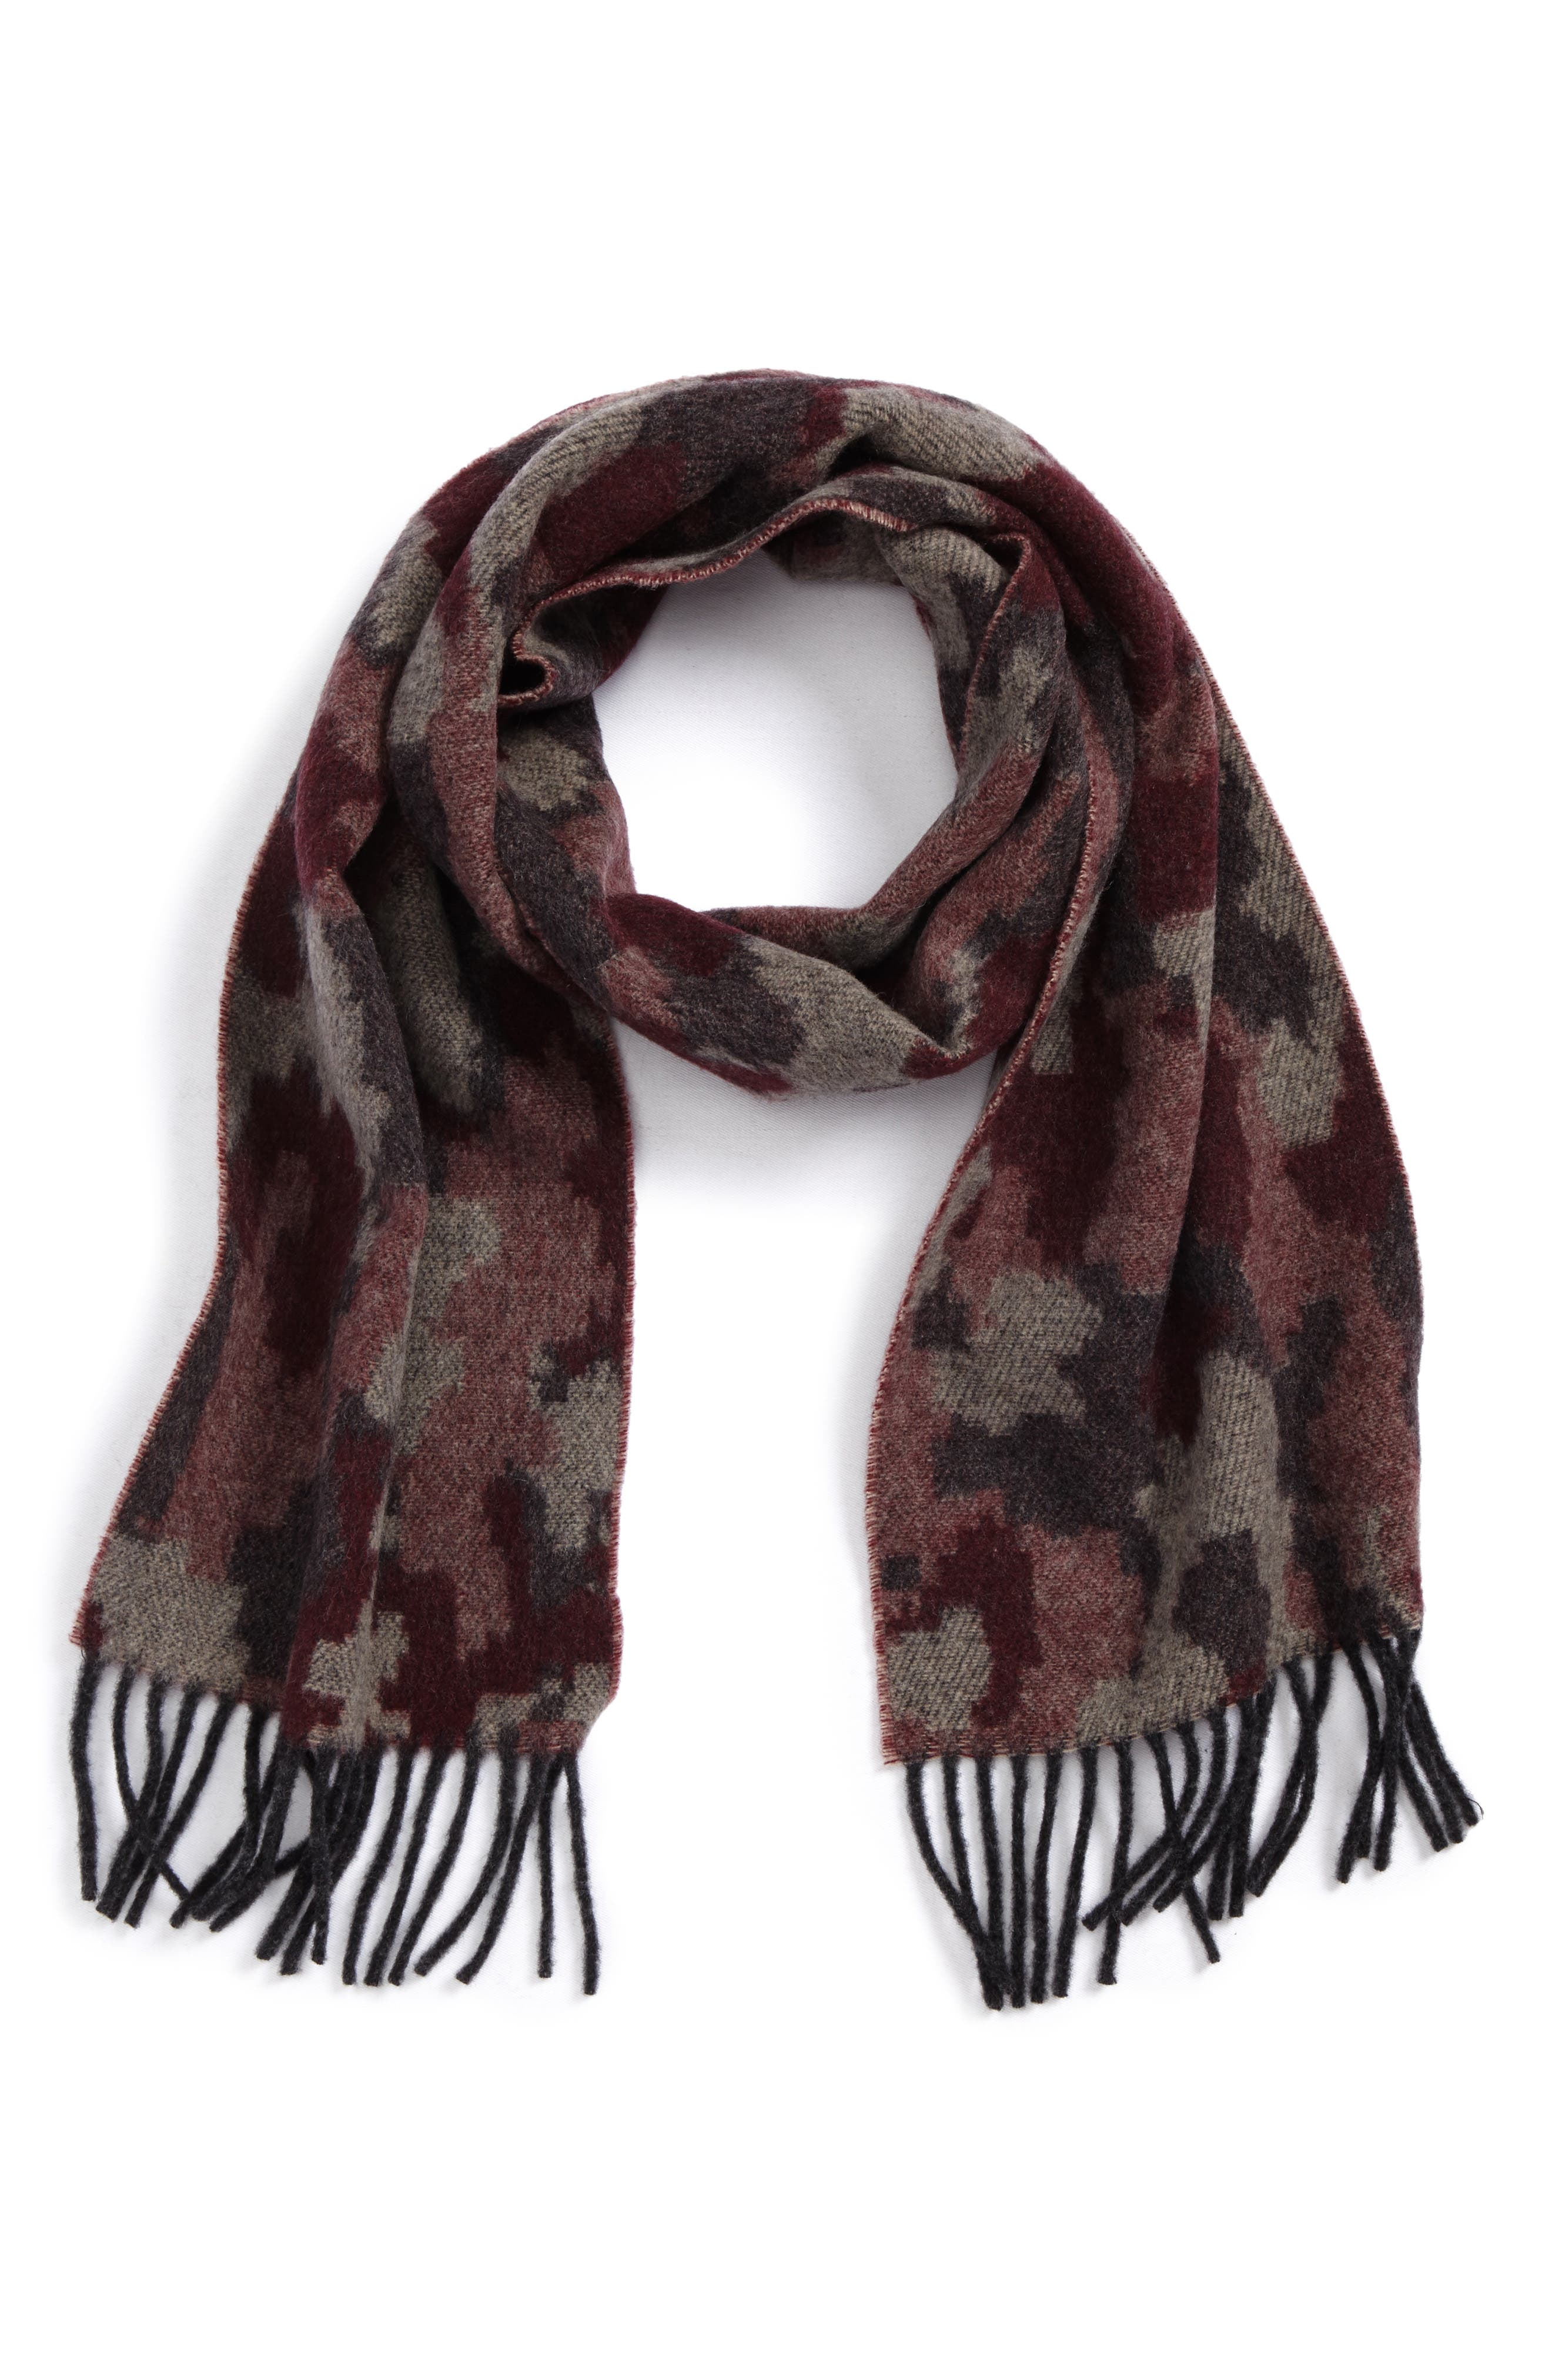 Paul Smith Jacquard Camo Wool & Cashmere Scarf